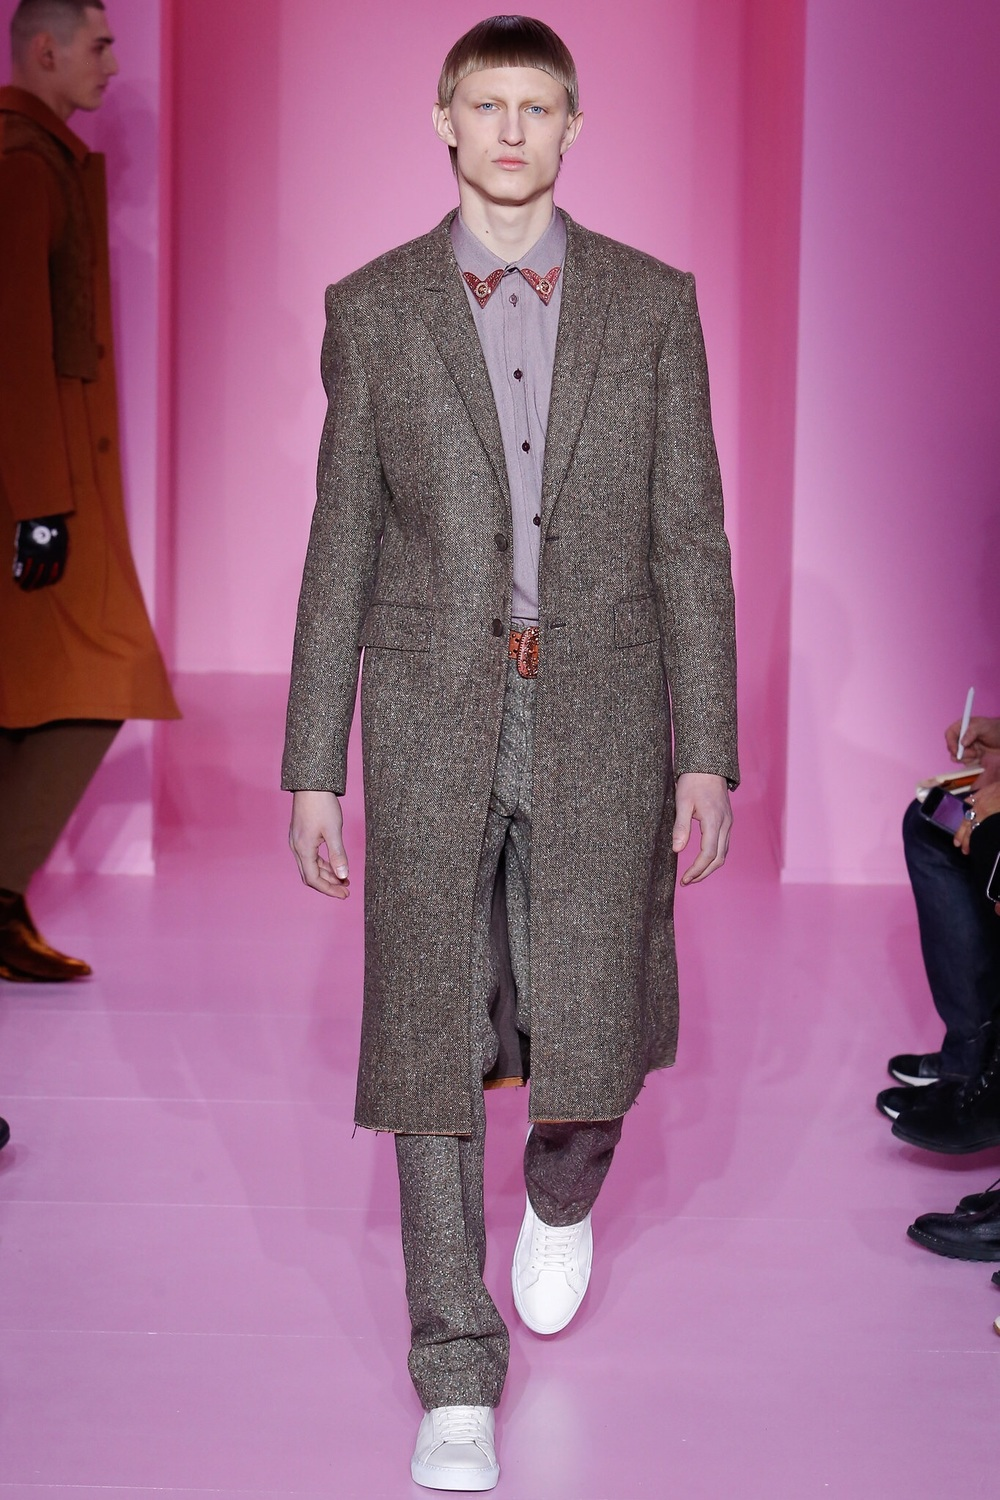 Givenchy, Look #15 http://www.vogue.com/fashion-shows/fall-2016-menswear/givenchy/slideshow/collection#15?mbid=ios_share